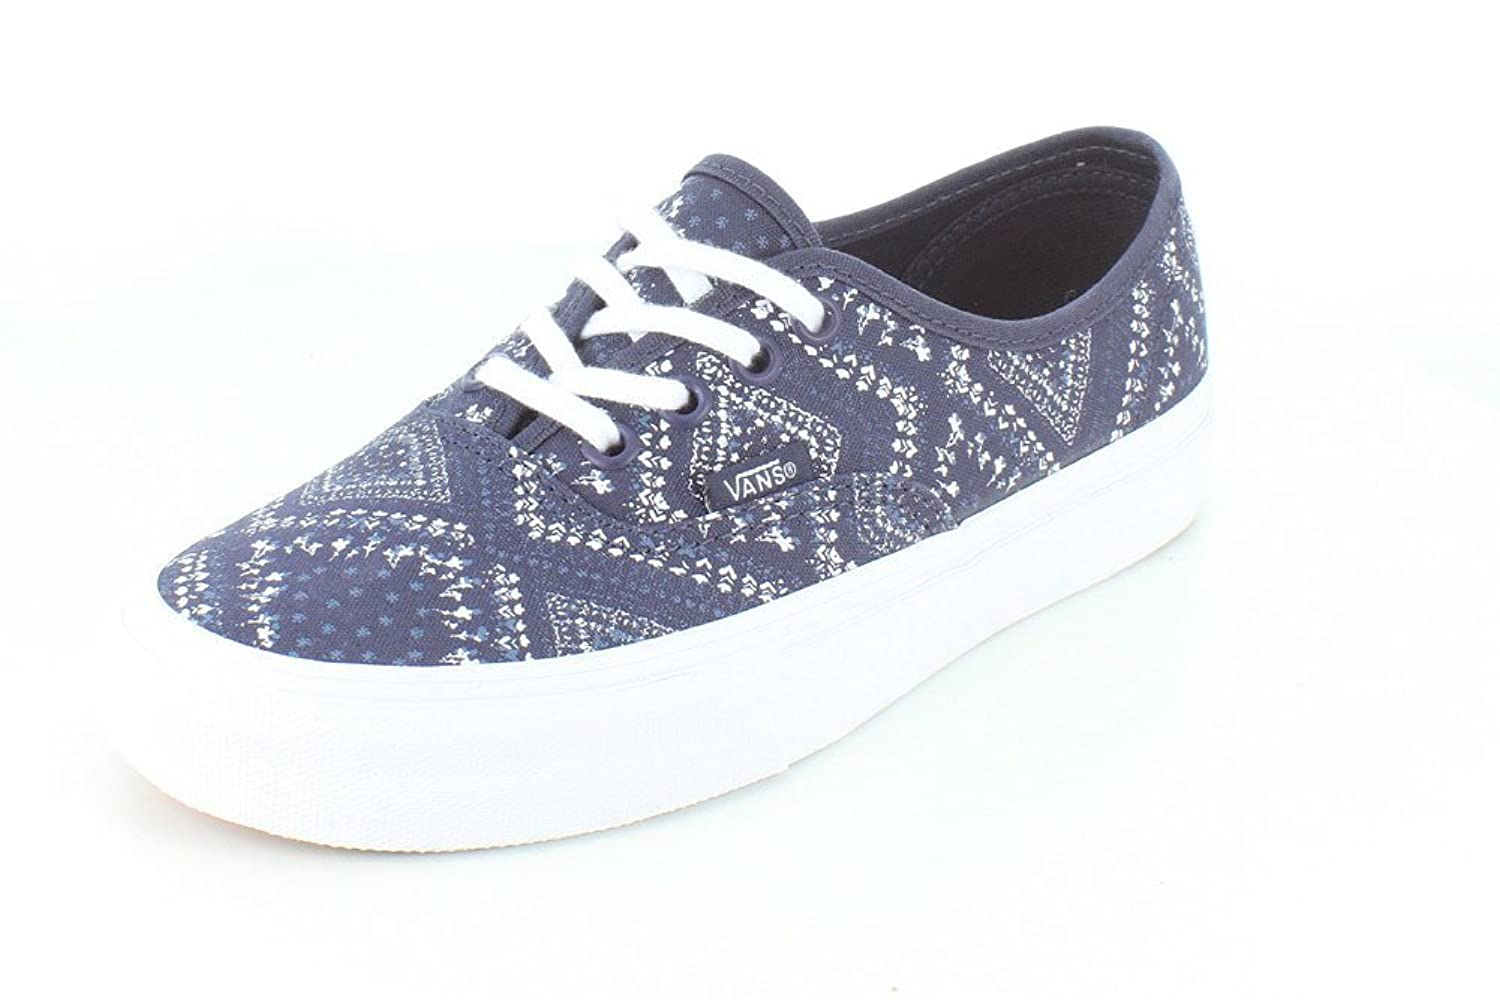 vans authentique des des authentique femmes toe toile bleu de baskets services durables e9fe6e